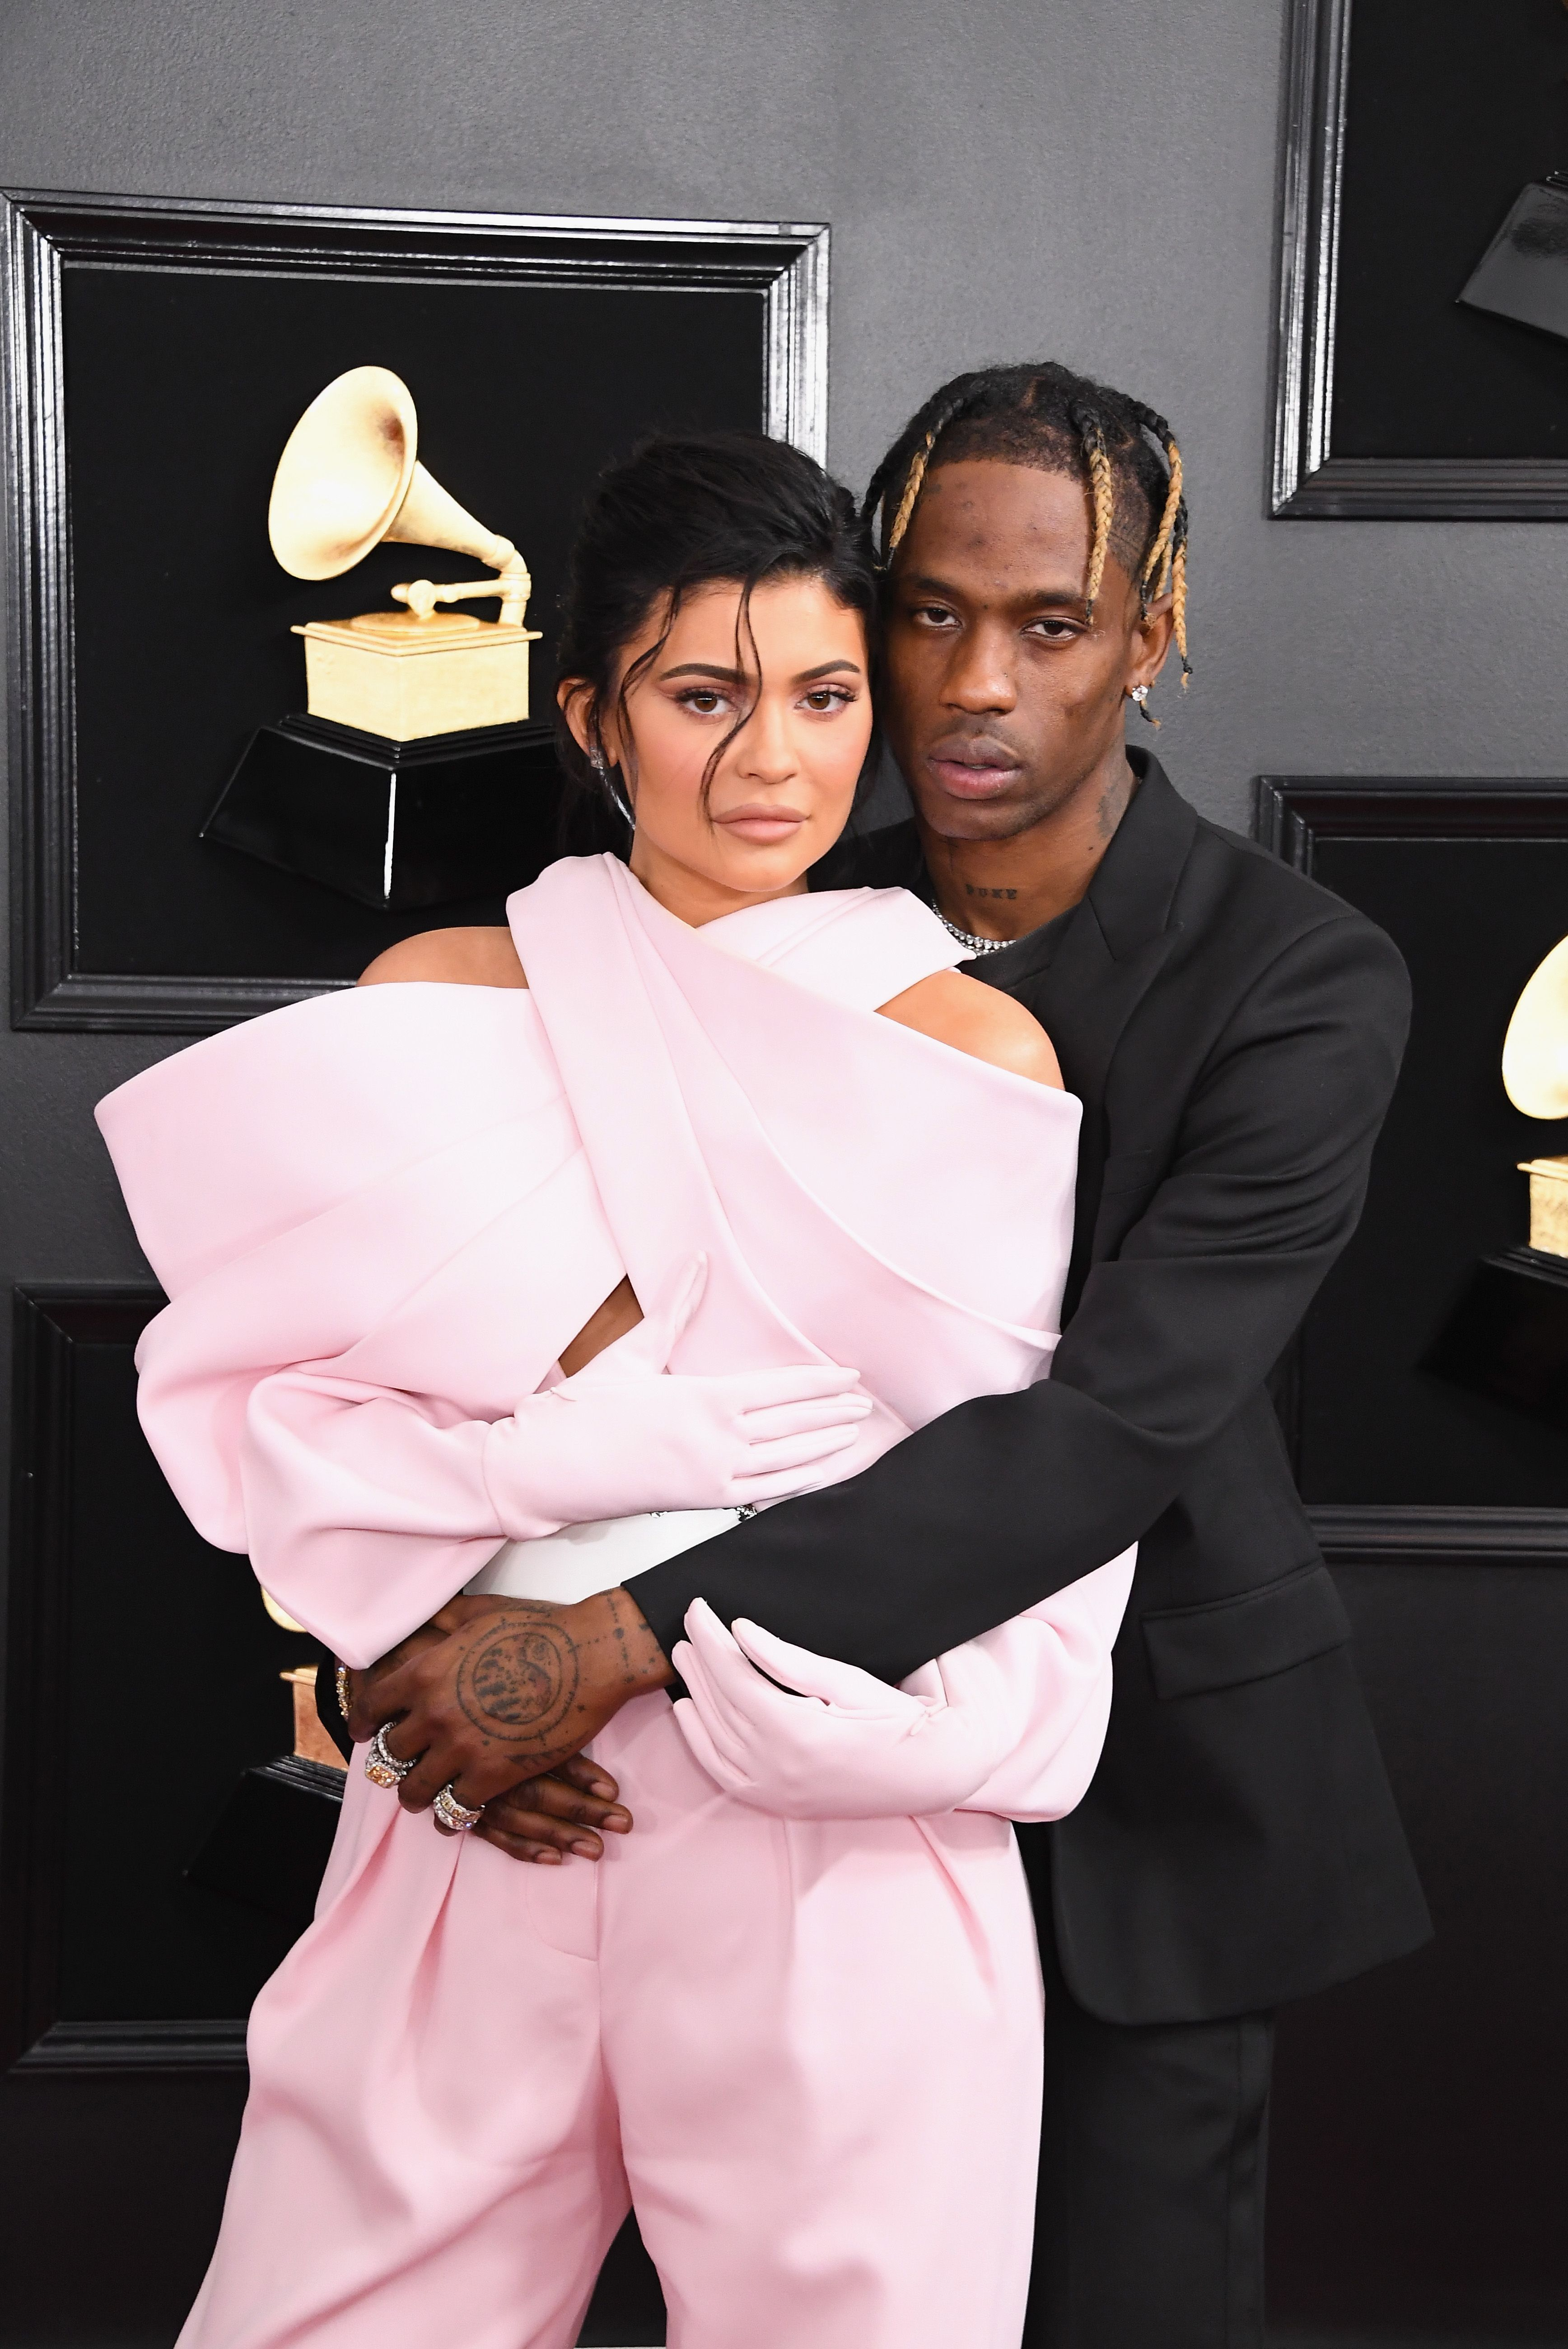 The 13 Most Awkward, Cringey Moments From The 2019 Grammys